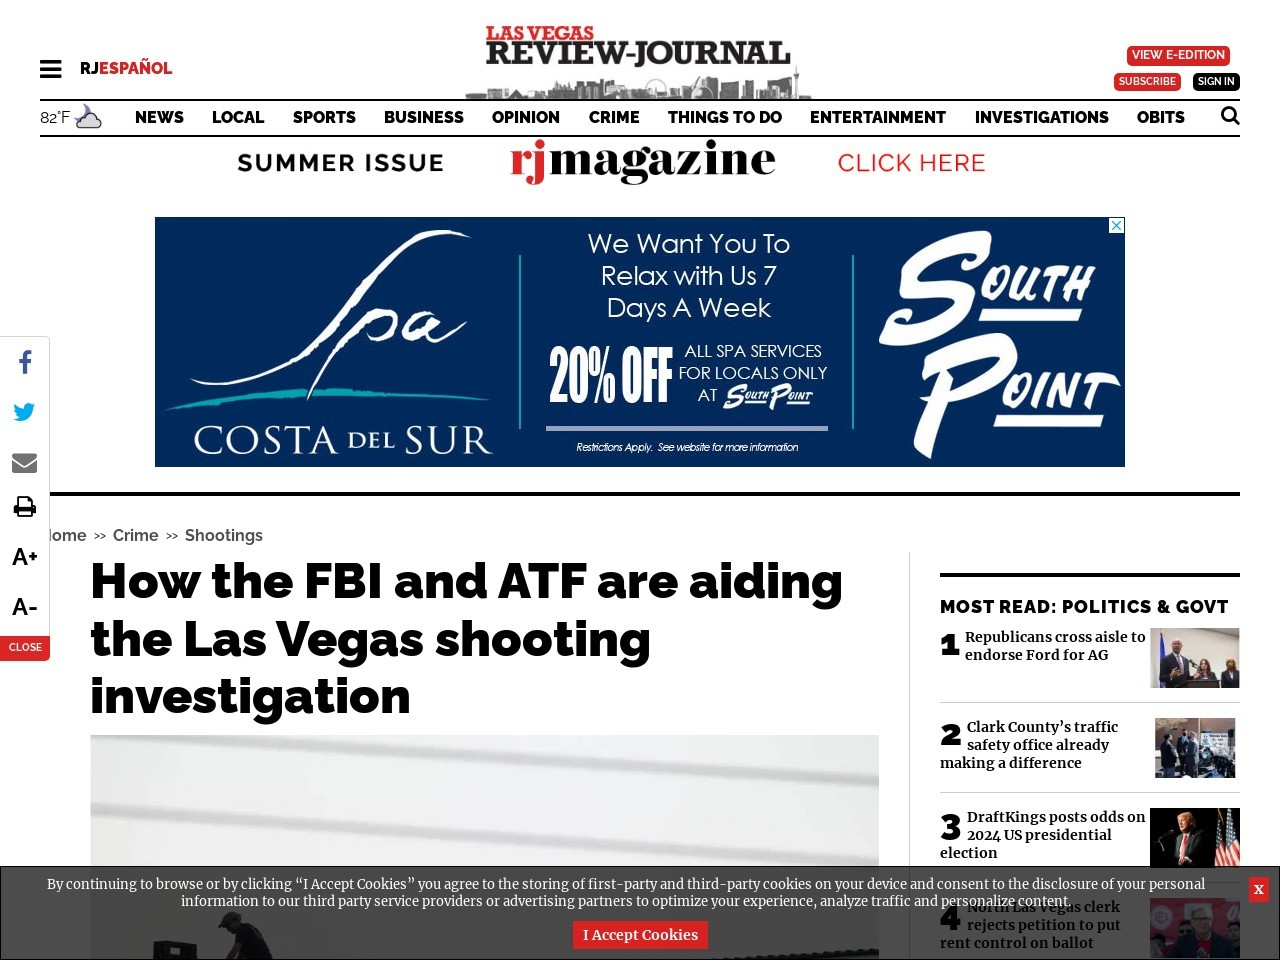 How the FBI and ATF are aiding the Las Vegas shooting investigation